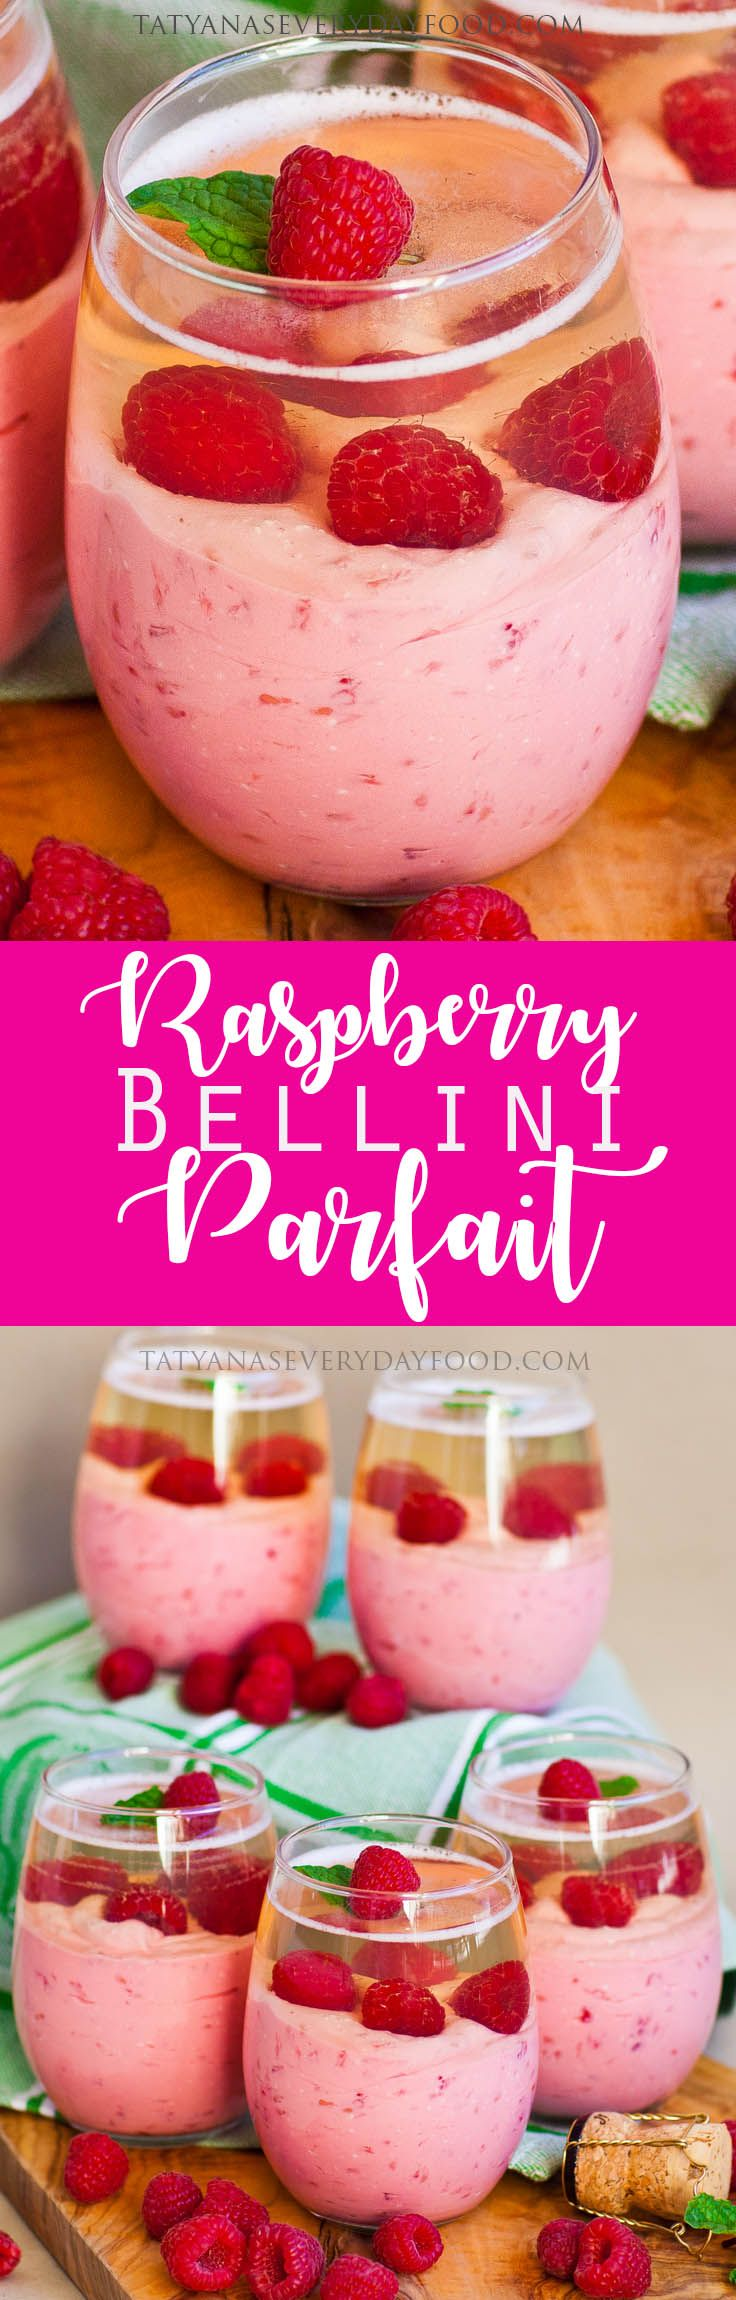 Nothing like kicking off the new year with a tasty drink, in dessert form! My 'Raspberry Bellini Mousse Parfait' tastes like the iconic drink, with a creamy raspberry mousse layer topped off with champagne jello! It will be the hit of your New Year's Eve party, or enjoy it any time of the year! This […]